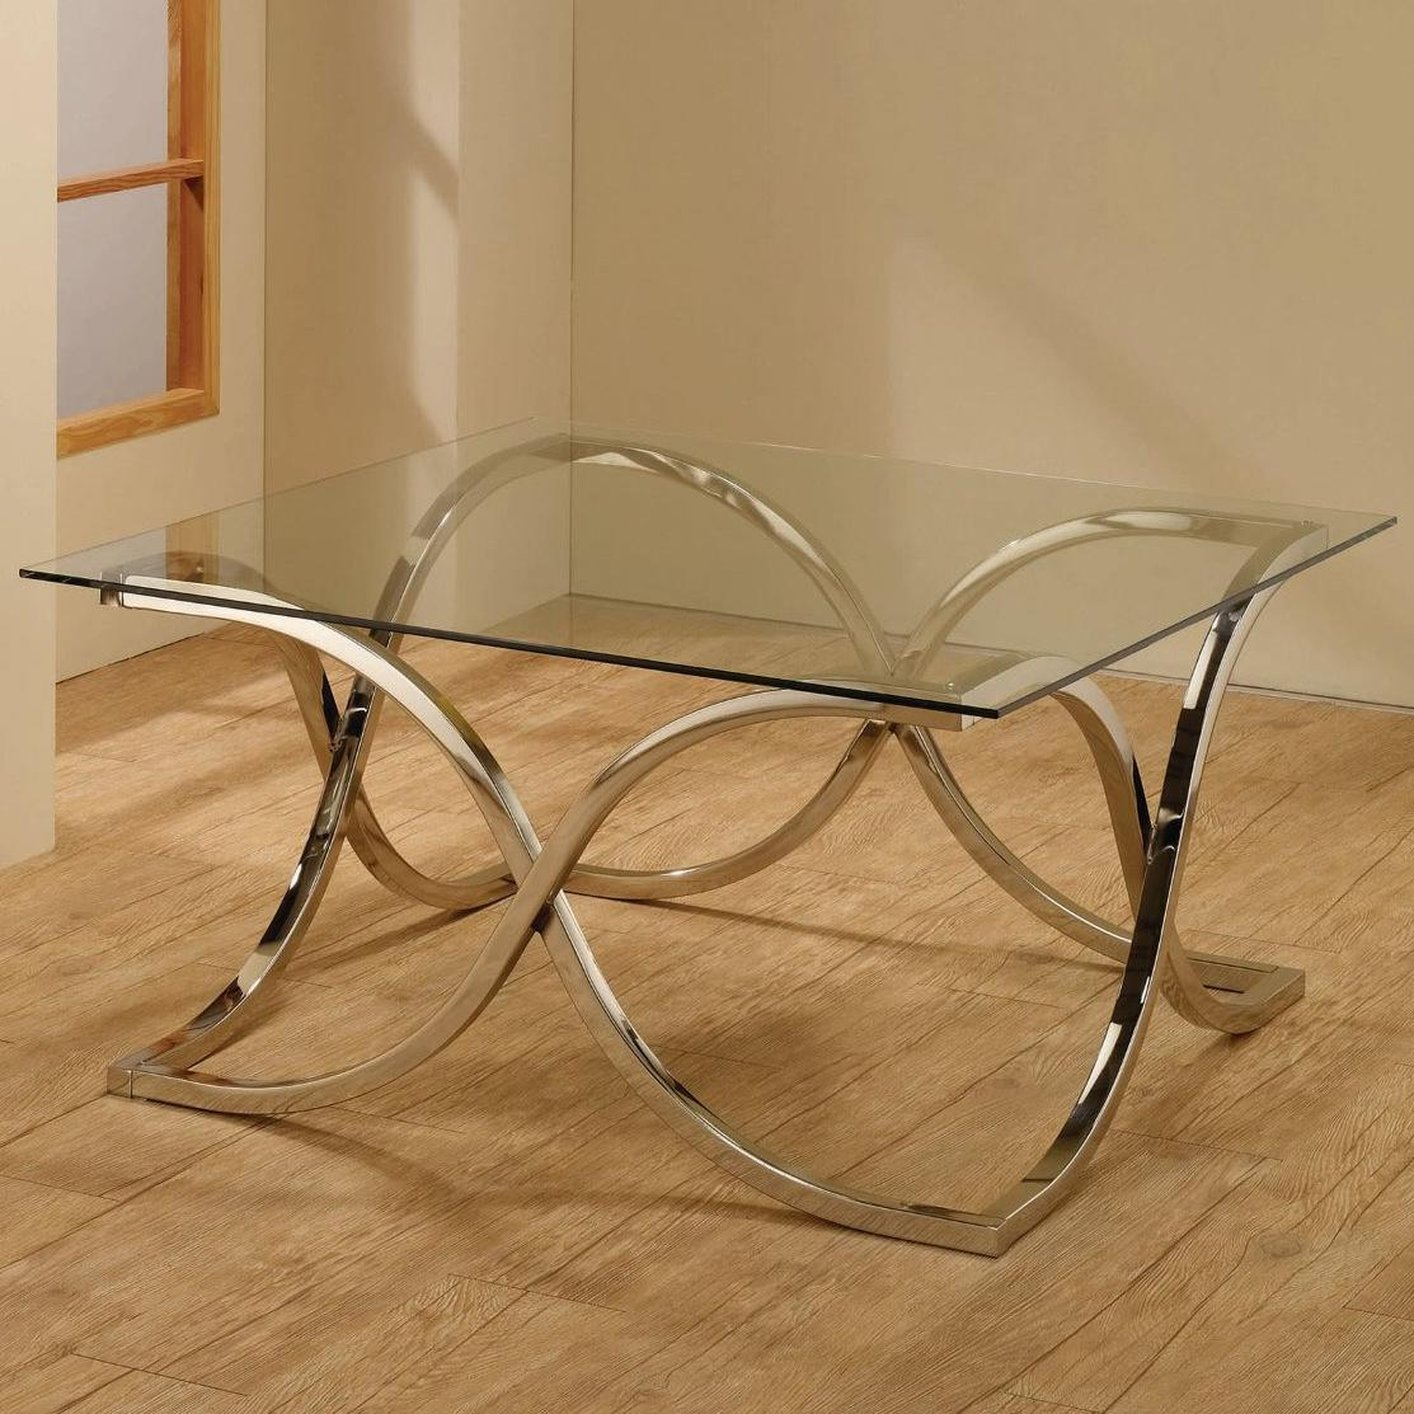 Silver Metal And Glass Coffee Table: Steal-A-Sofa Furniture Outlet